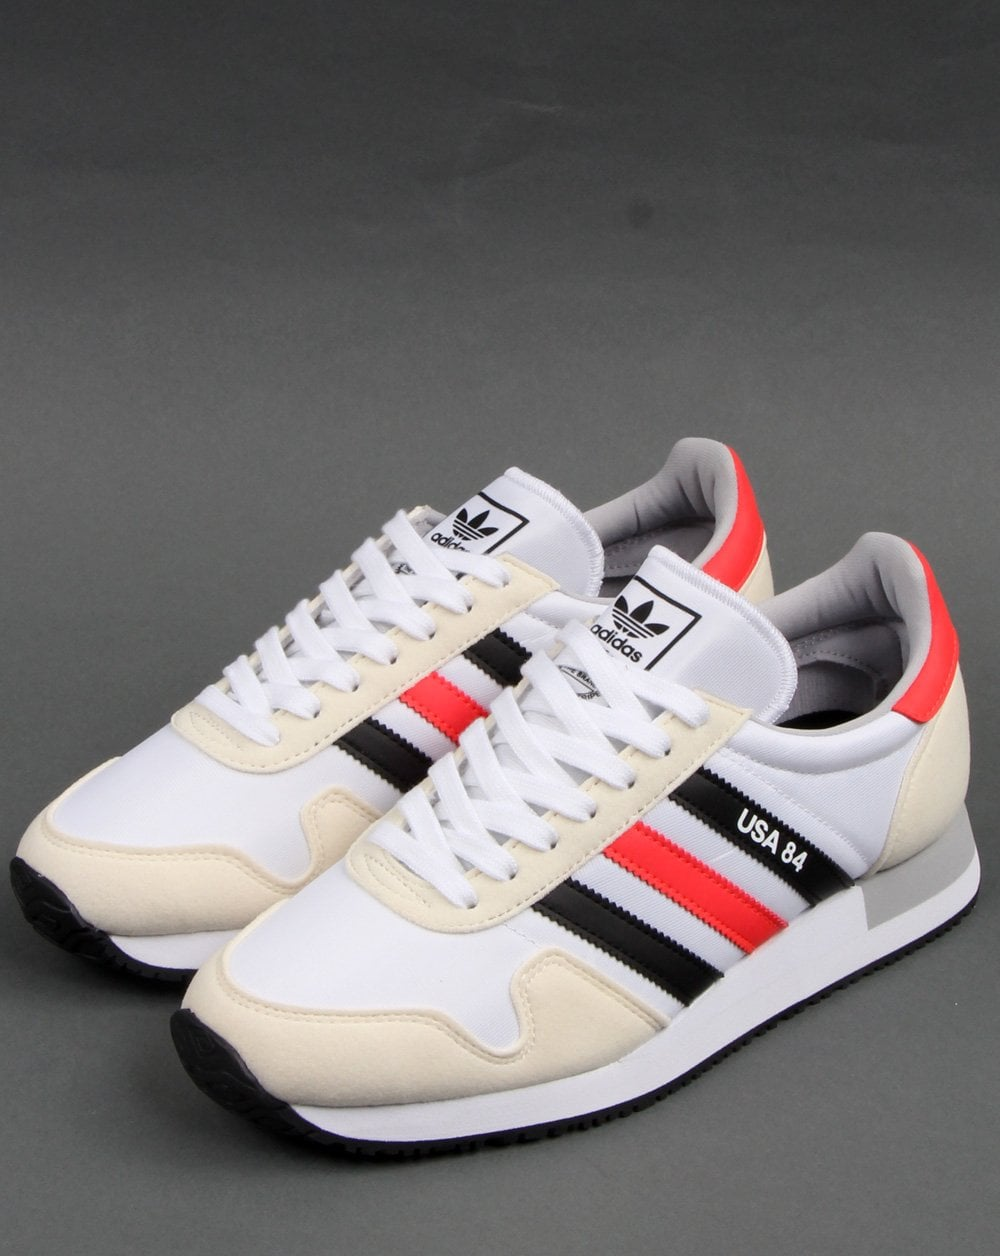 Adidas Usa 84 Trainers White/Black/Red